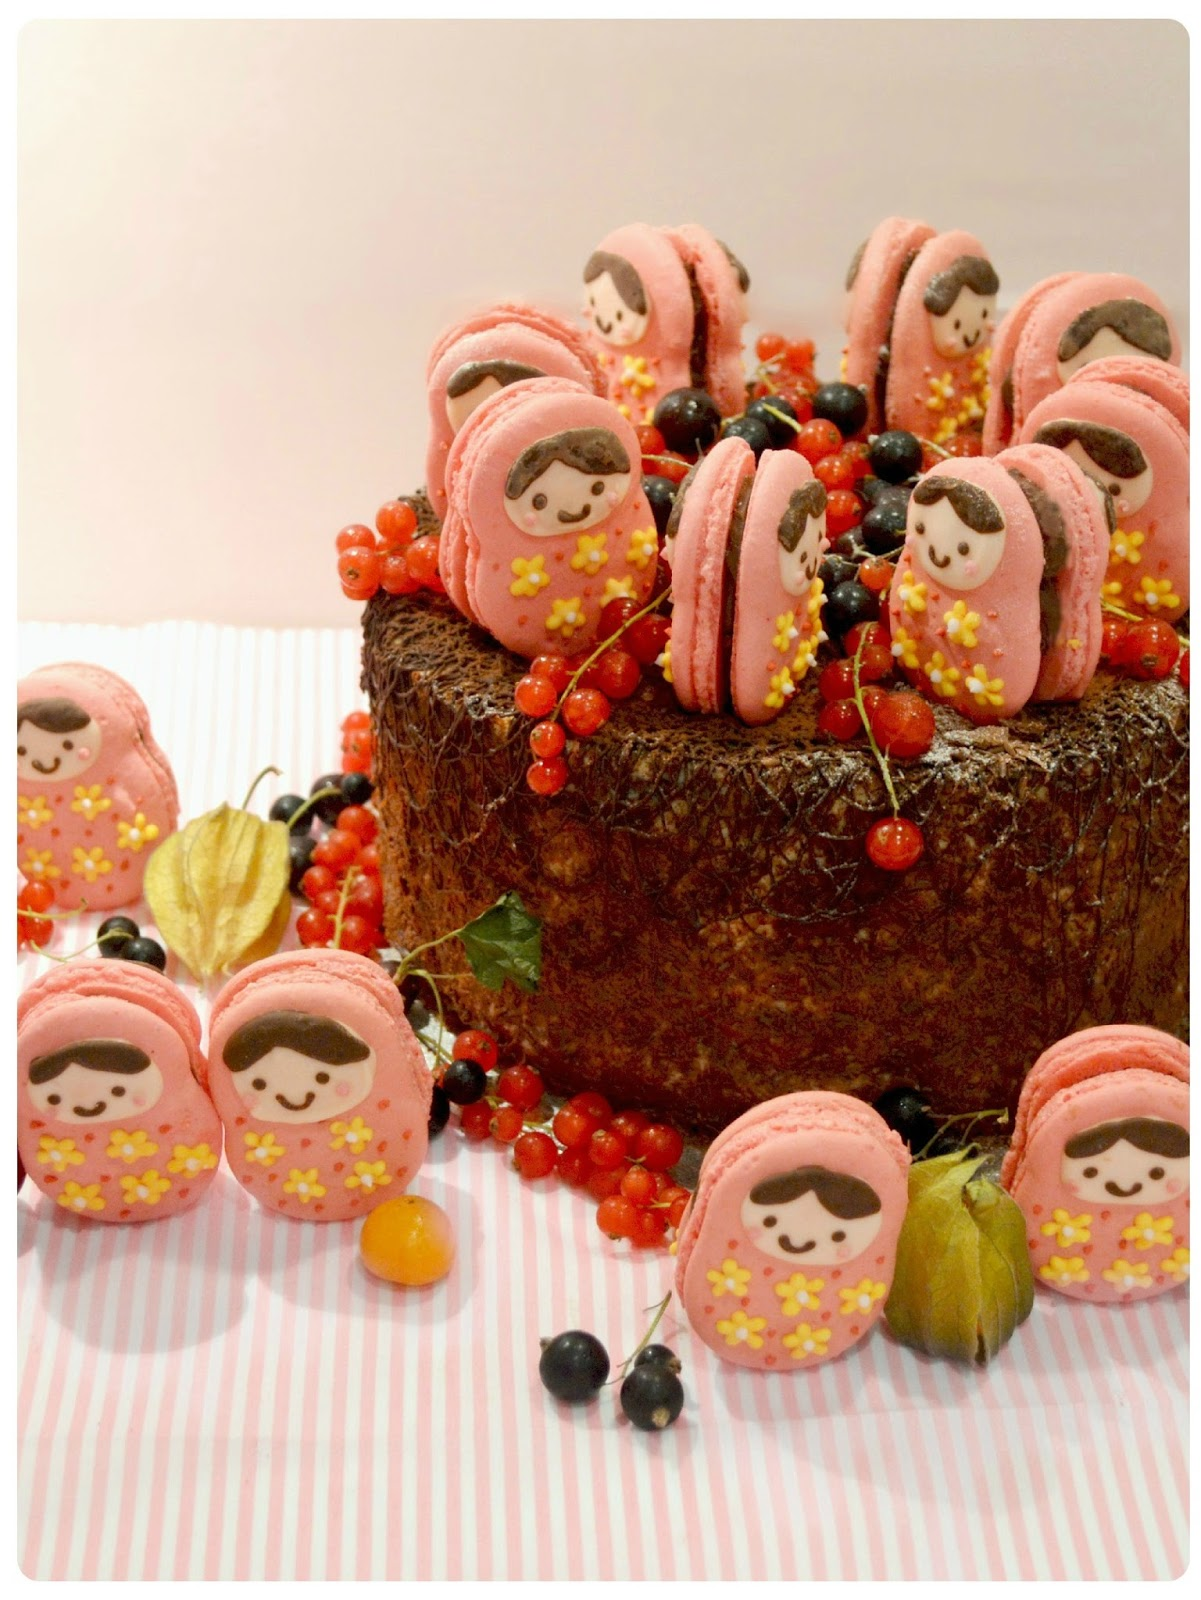 Black Forest Gateau with Russian Doll Macarons Birthday Cake London Cherie Kelly